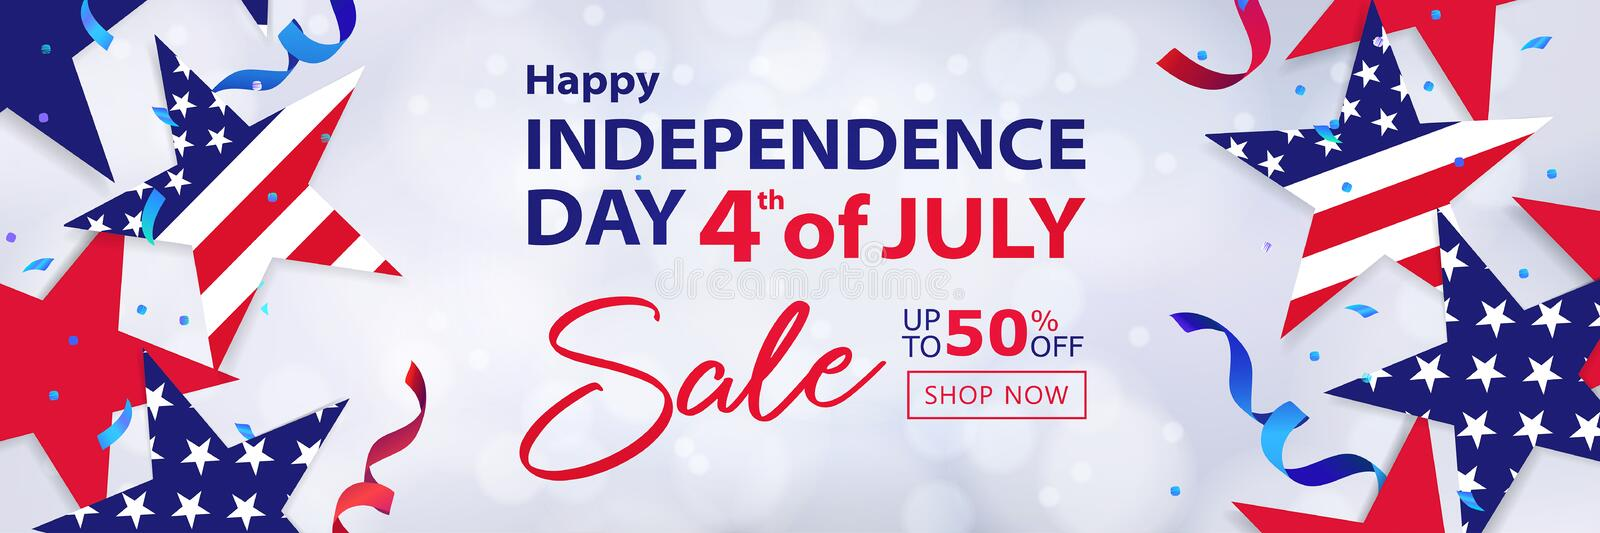 Fourth of July Sale long horizontal banner. 4th of July holiday background royalty free illustration